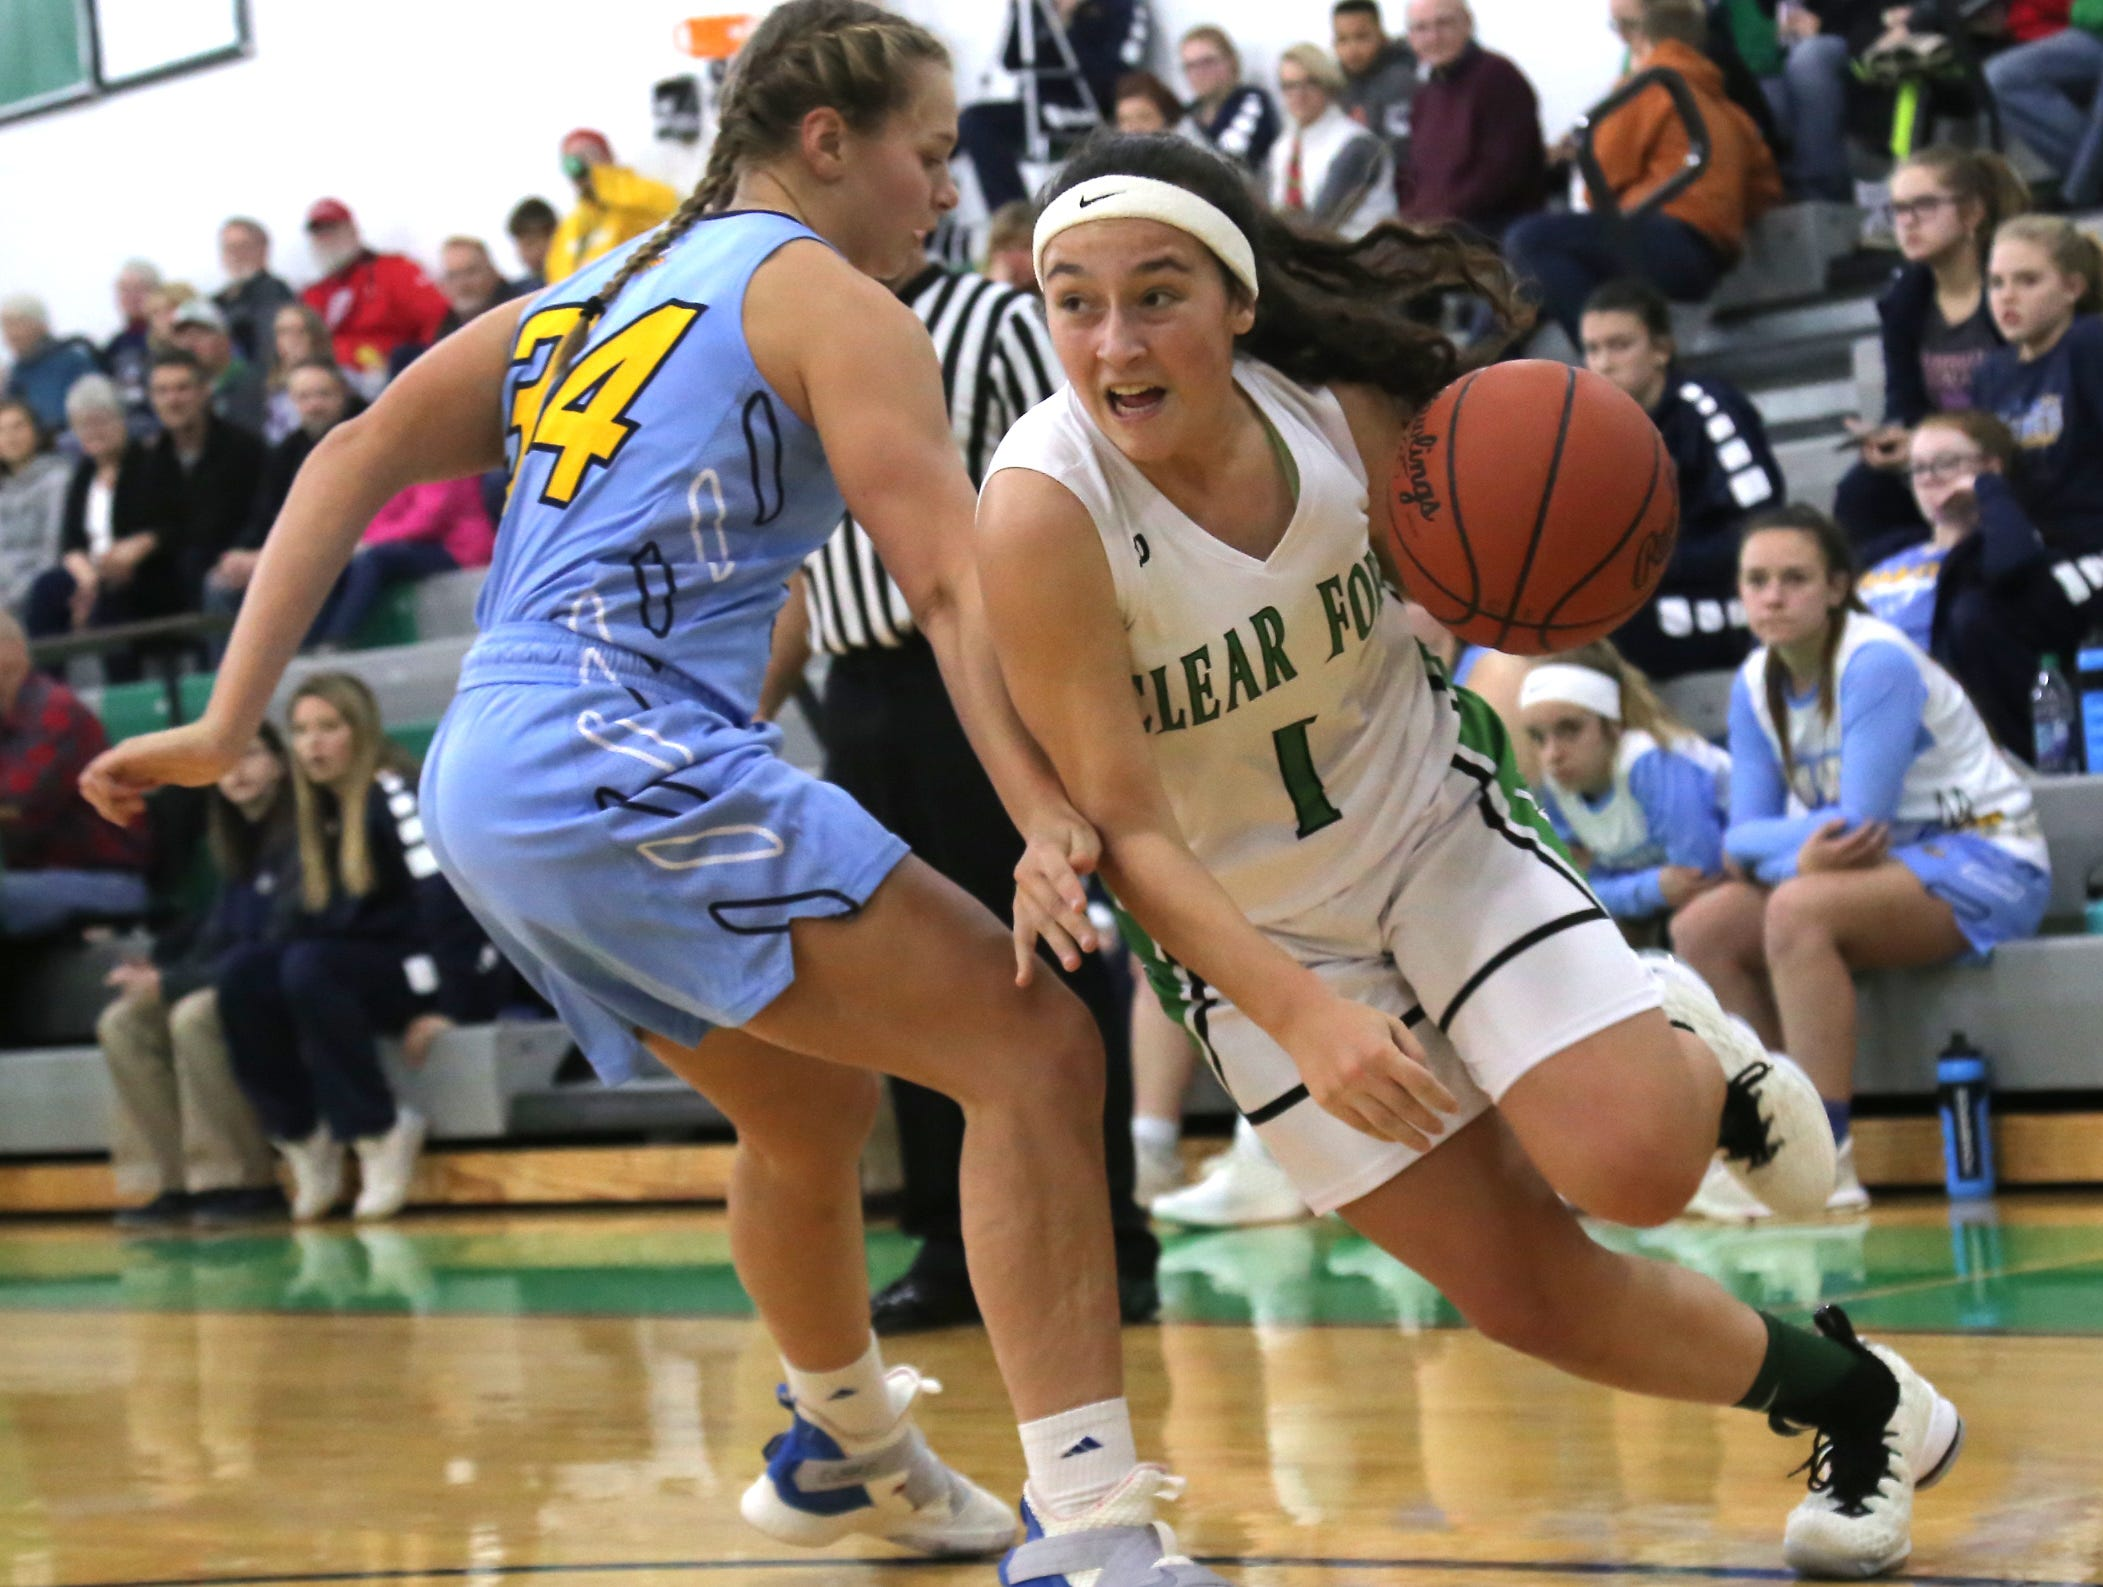 Clear Fork's Morgan Galco dribbles the ball against River Valley's Gema Starrs on Tuesday.